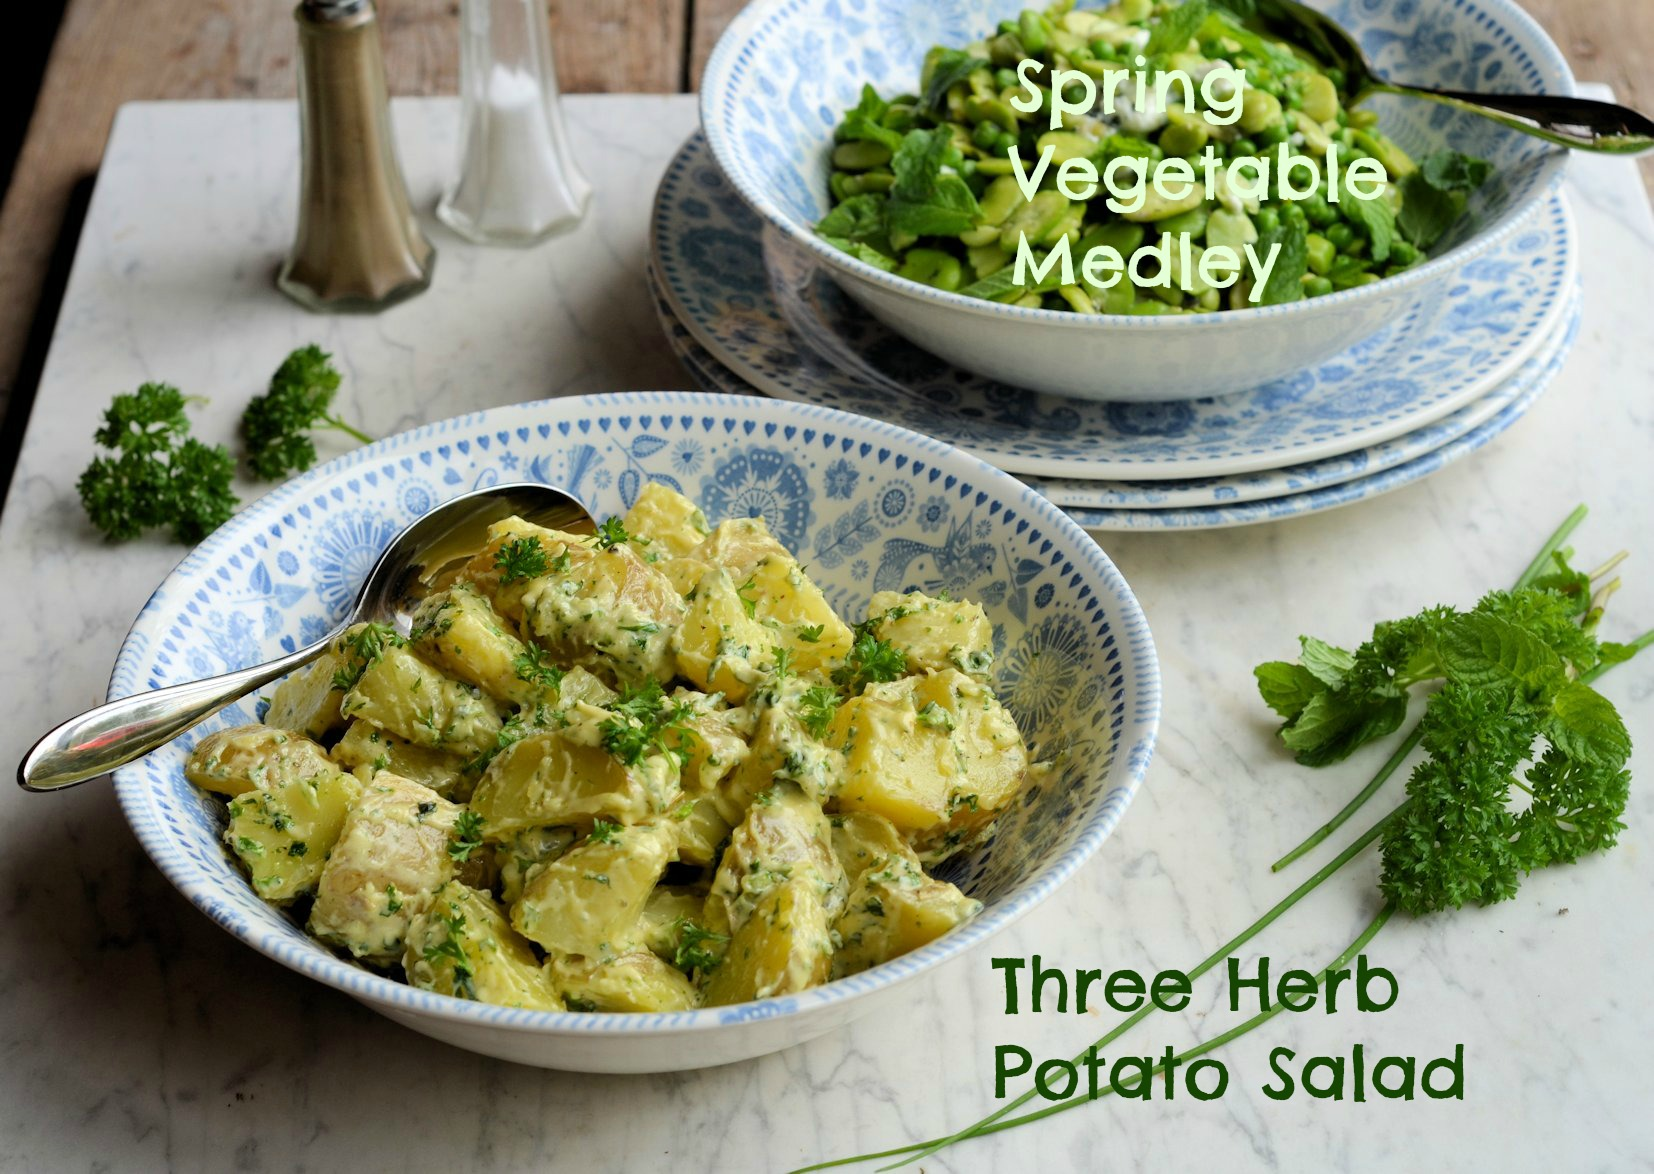 Broad Bean and Pea Medley with Feta Cheese and potato salad